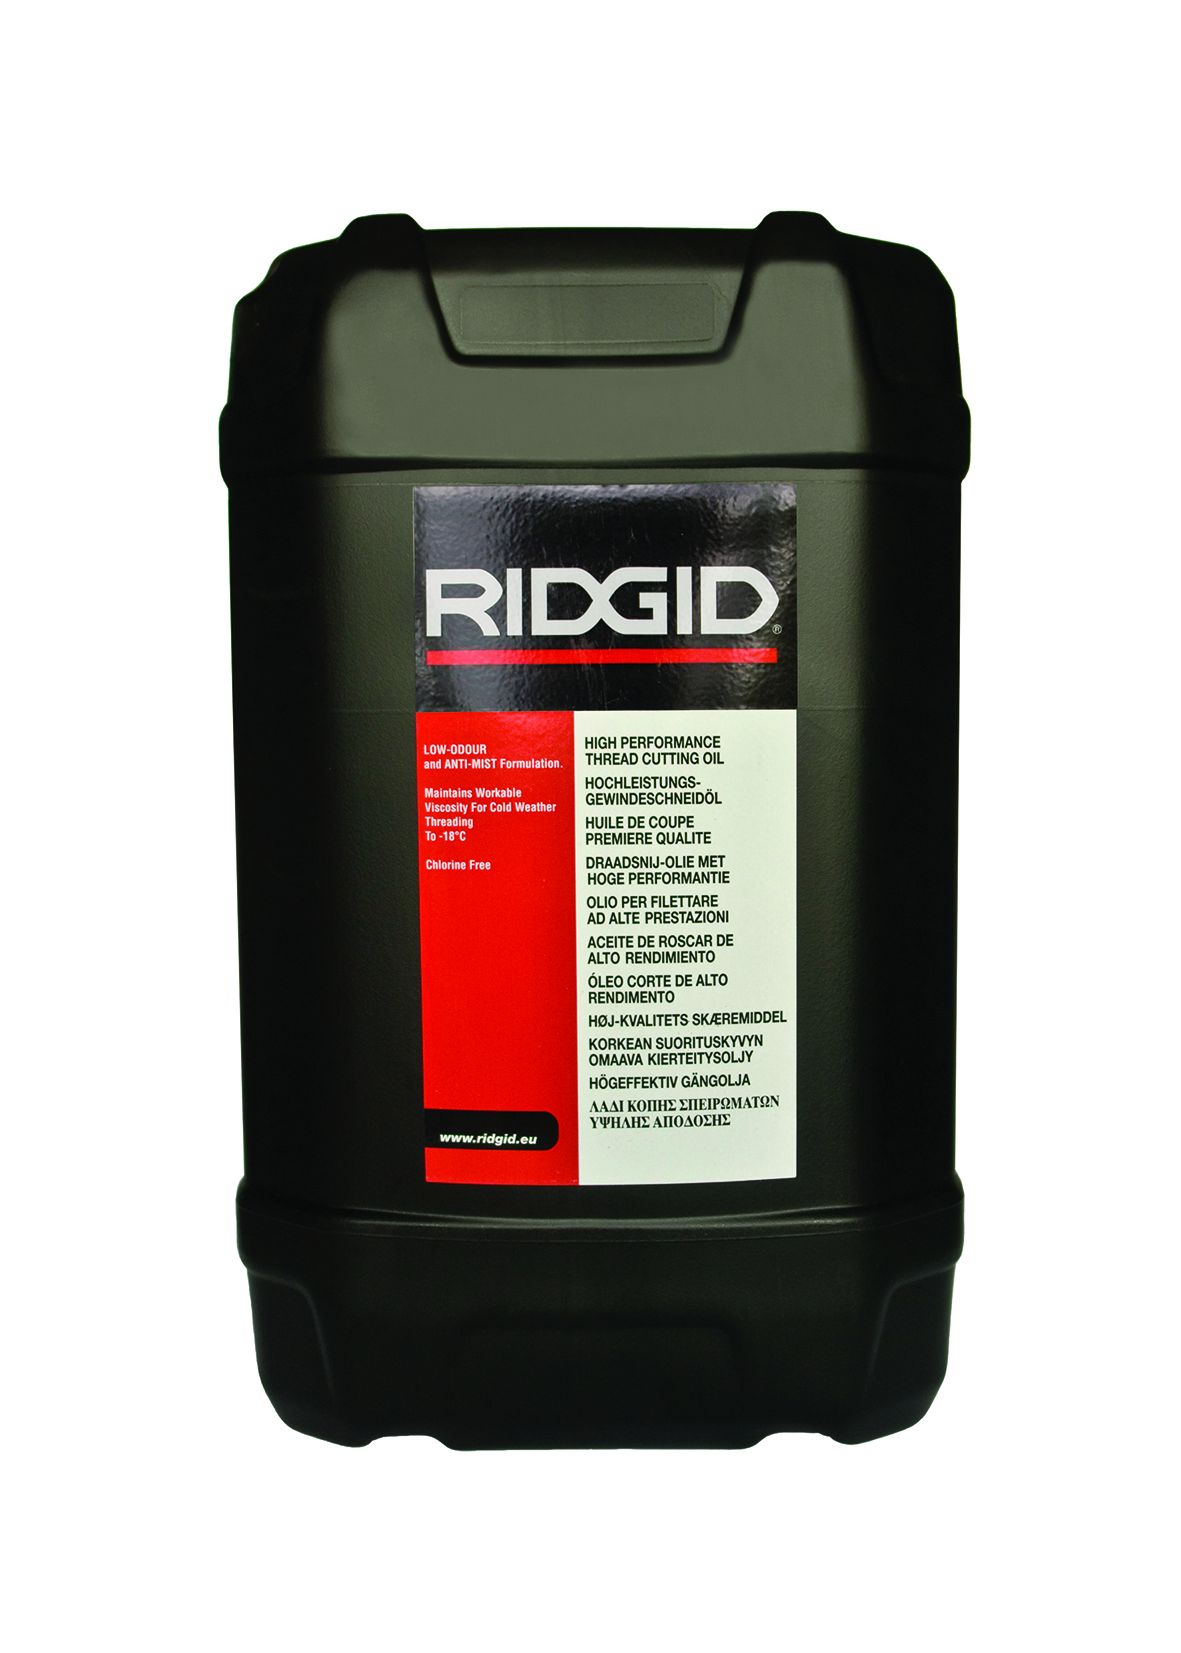 RIDGID 11531 - Thread Cutting Oil  25 Litre